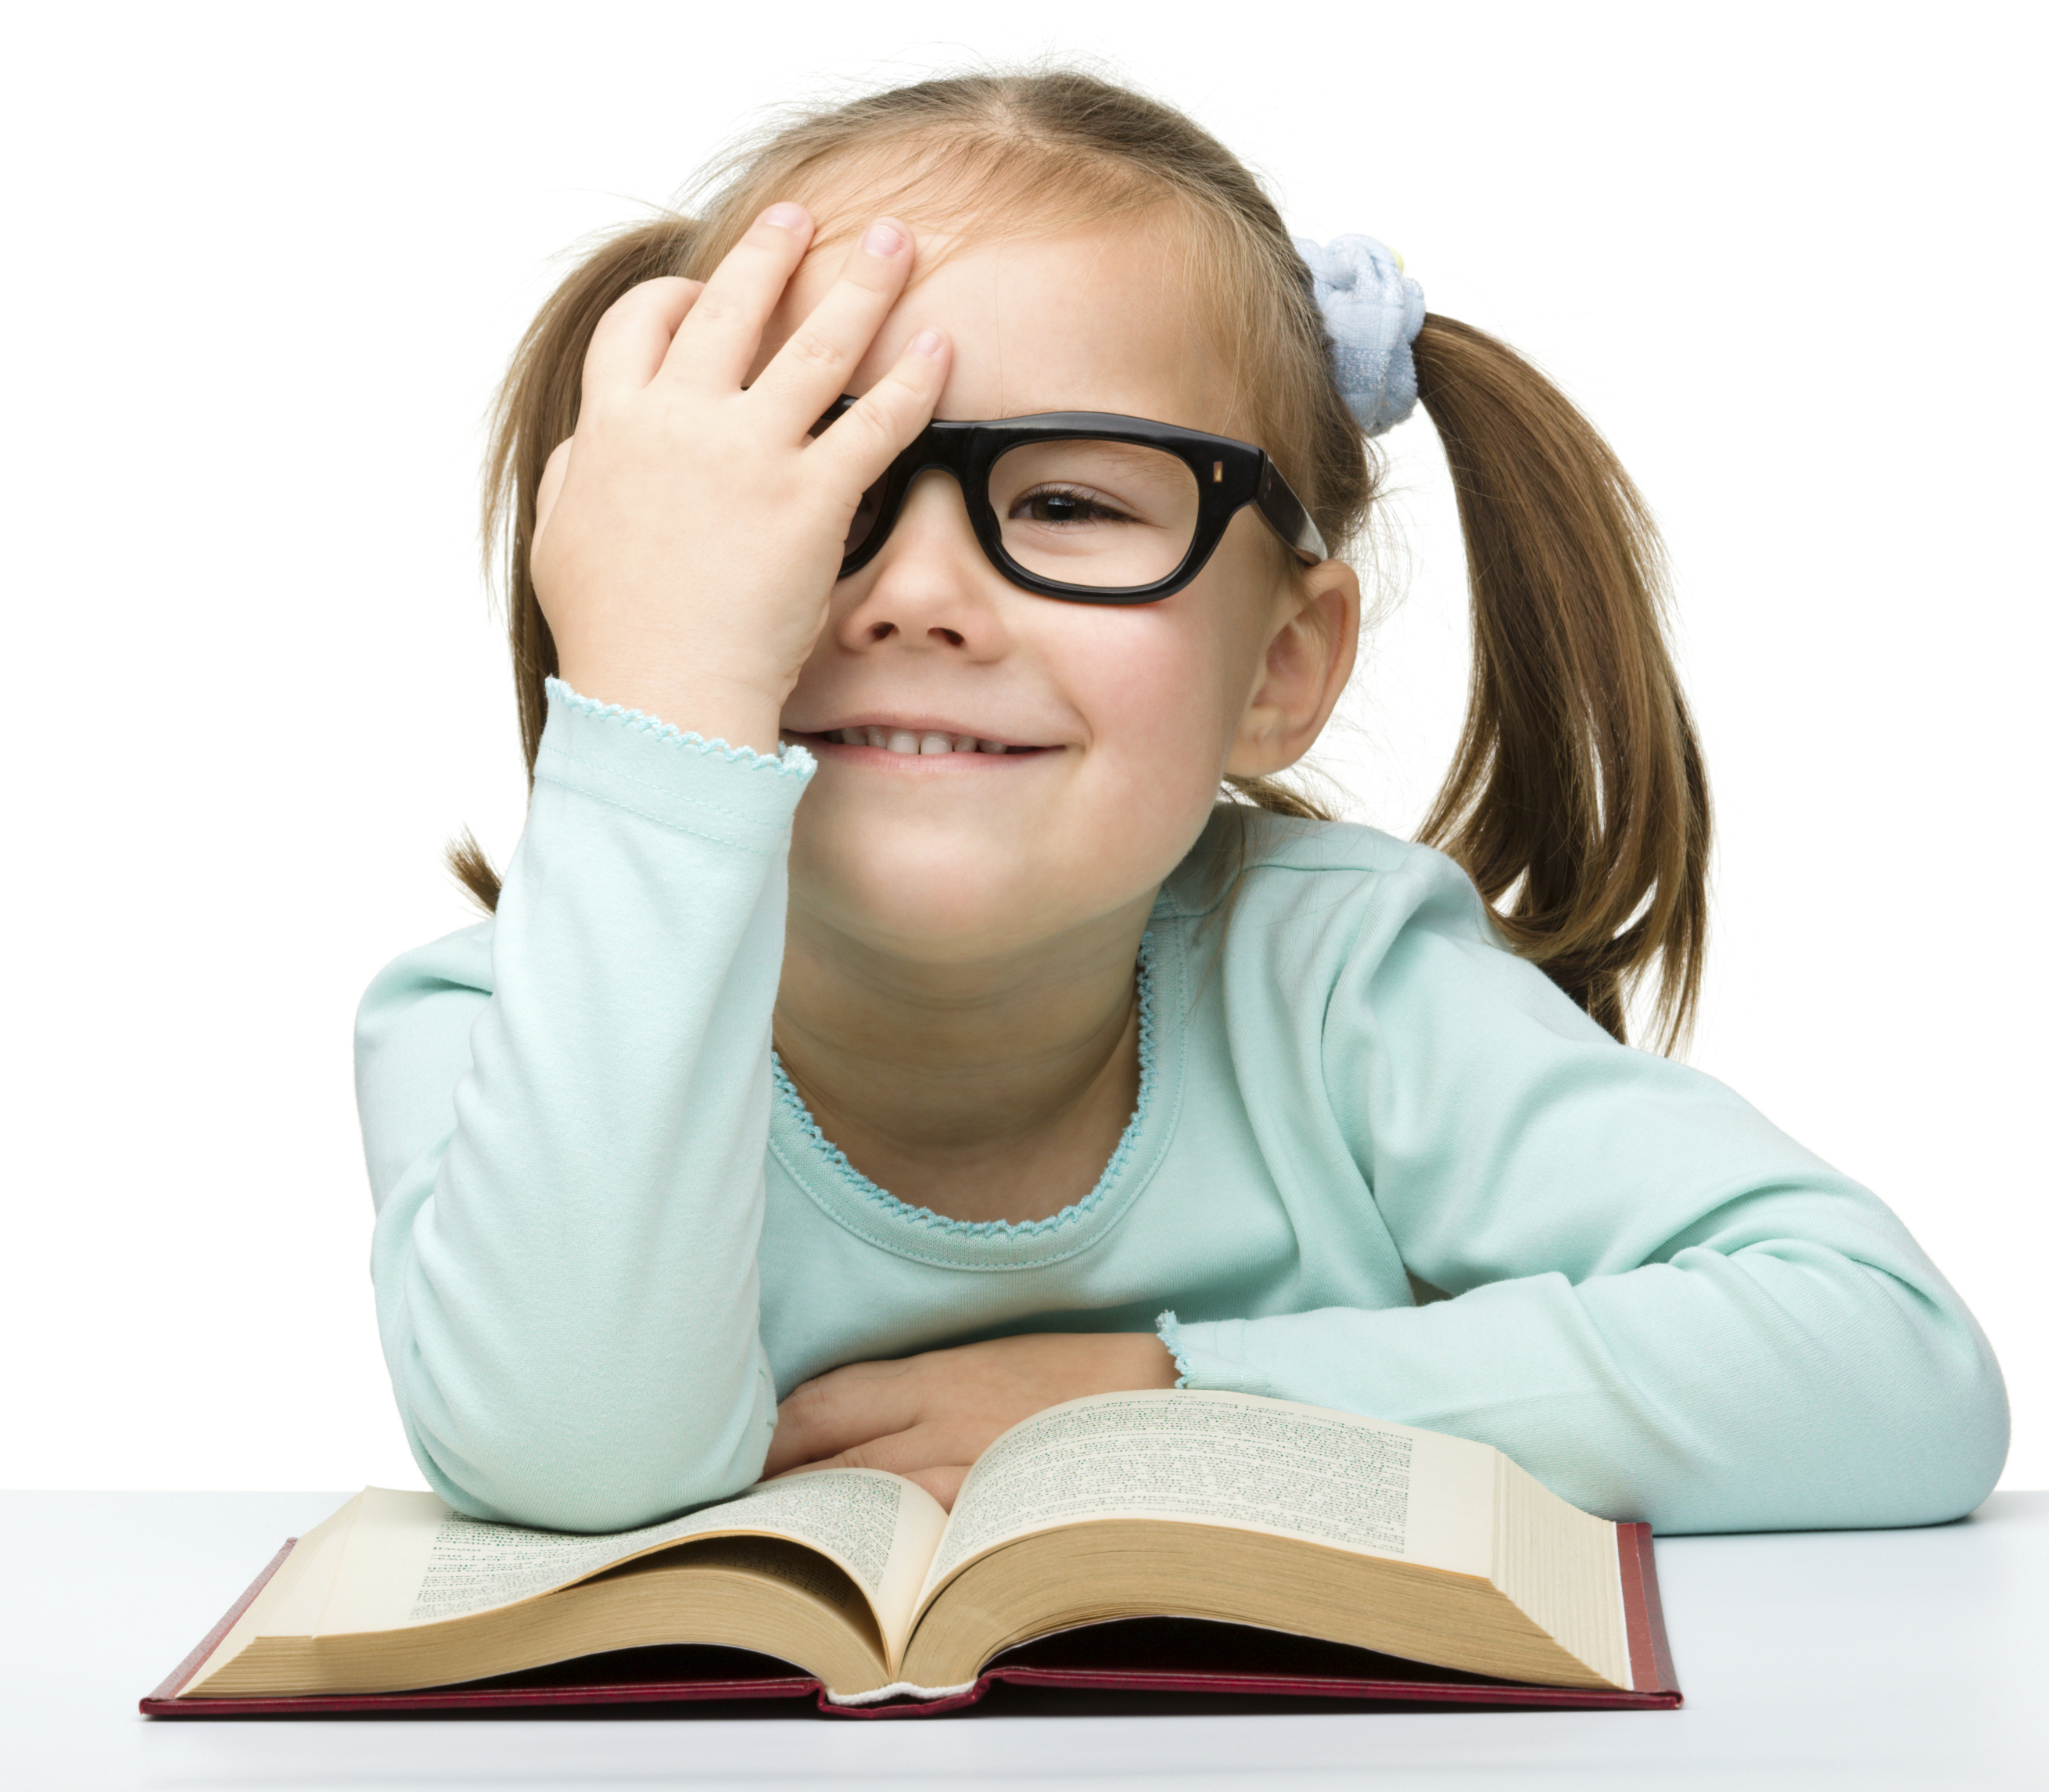 Kids with glasses and books